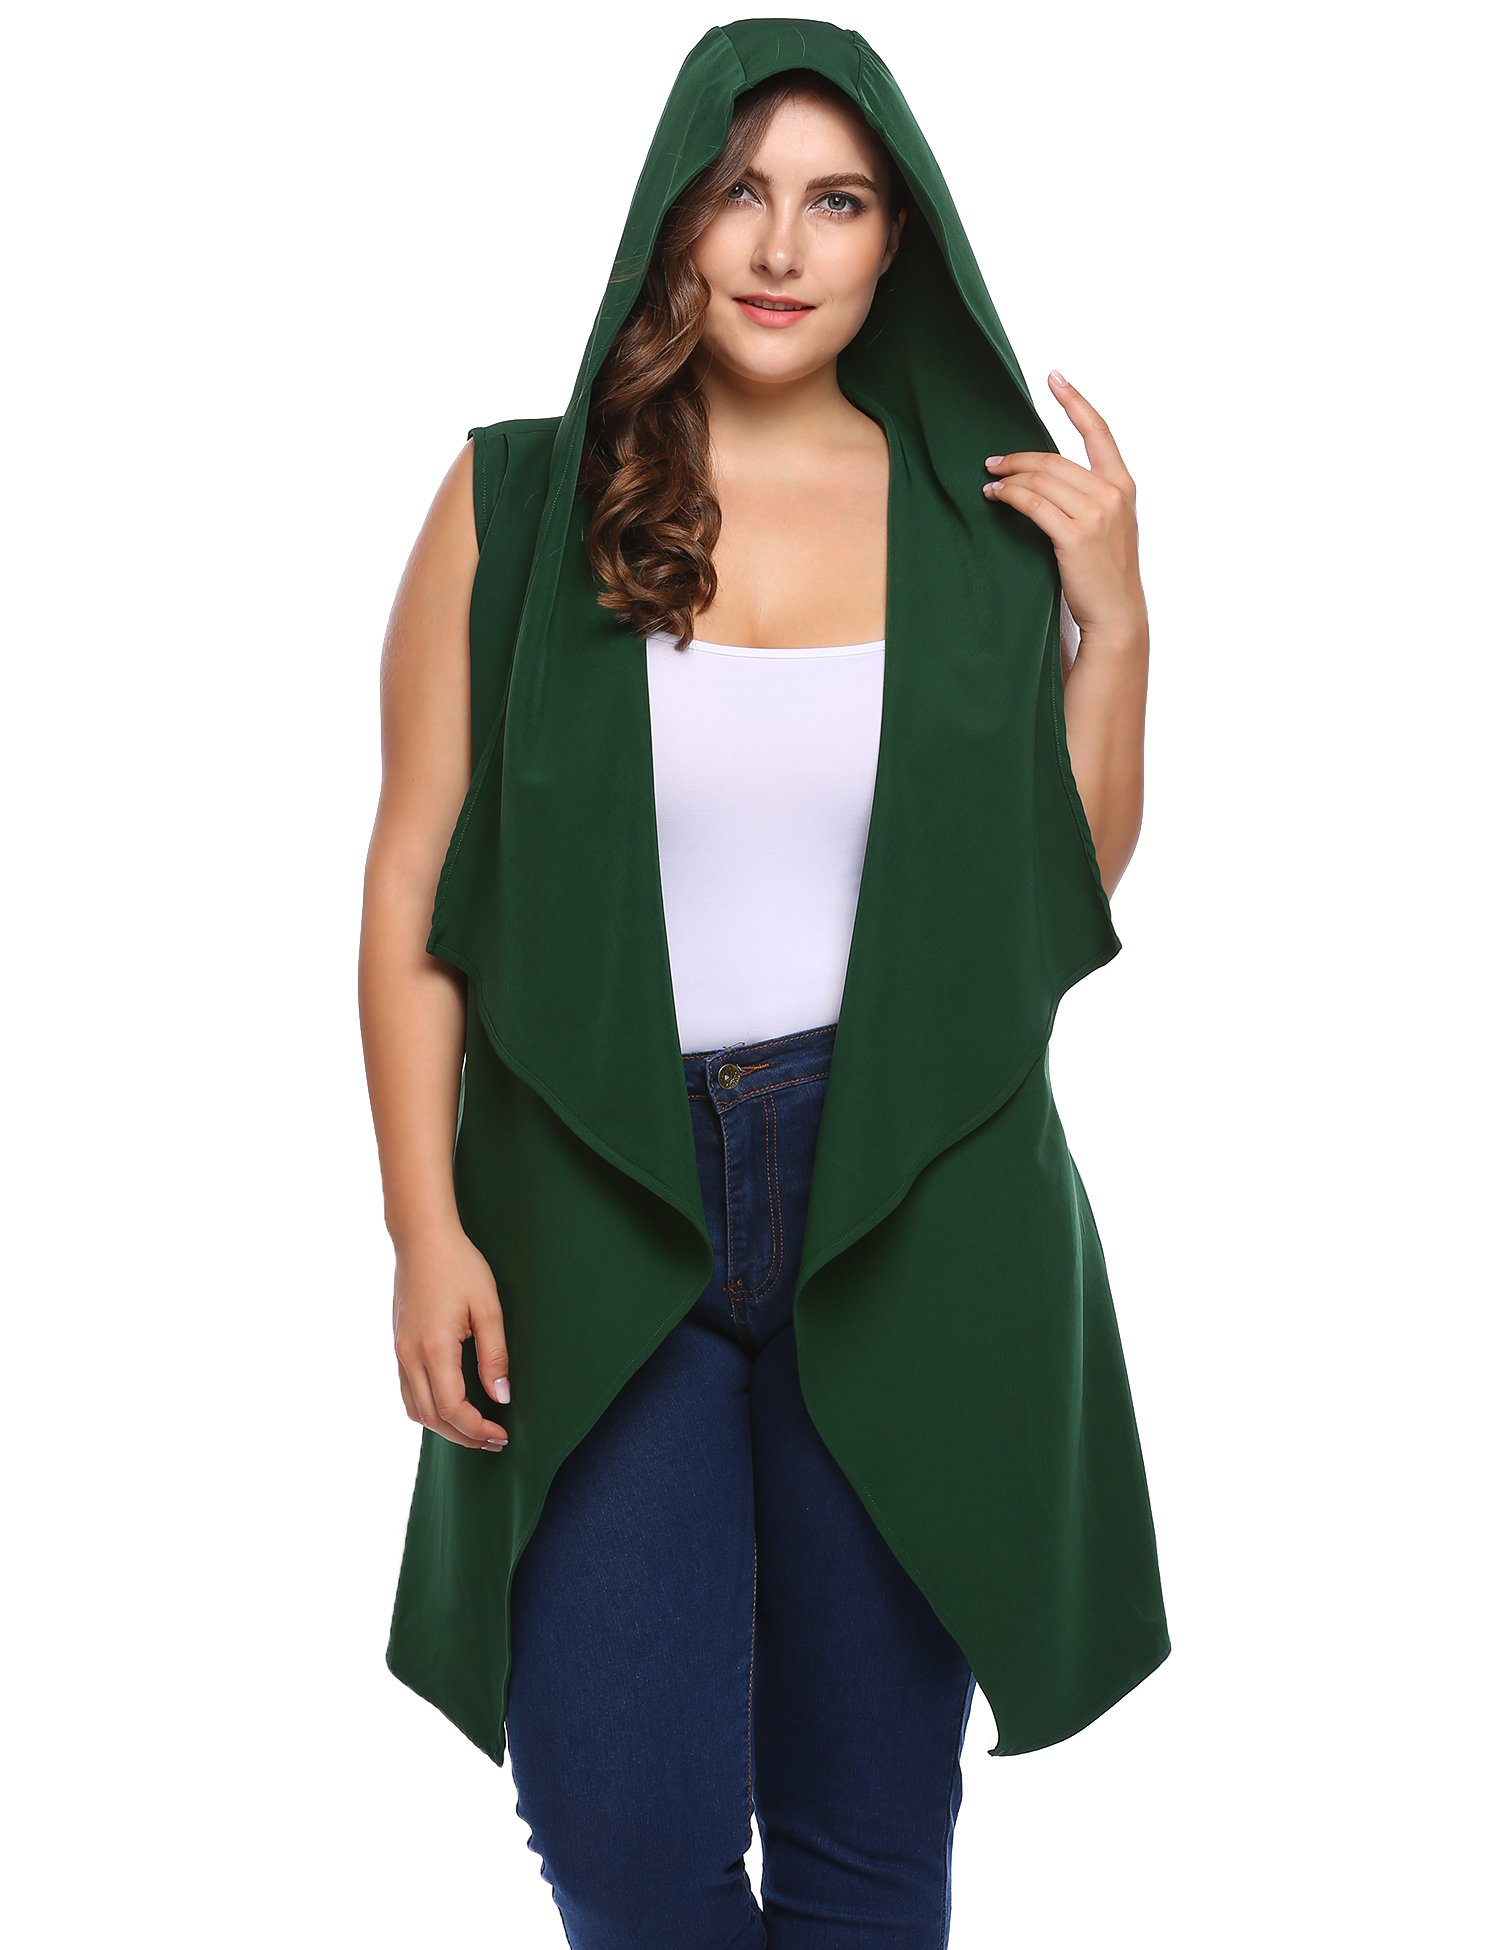 zeagoo Women's Plus Size Fashion Hooded Sleeveless Belted Asymetric Hem Open Front Long Cardigan Cover Up Vest Coat, Army Green, 22 Plus